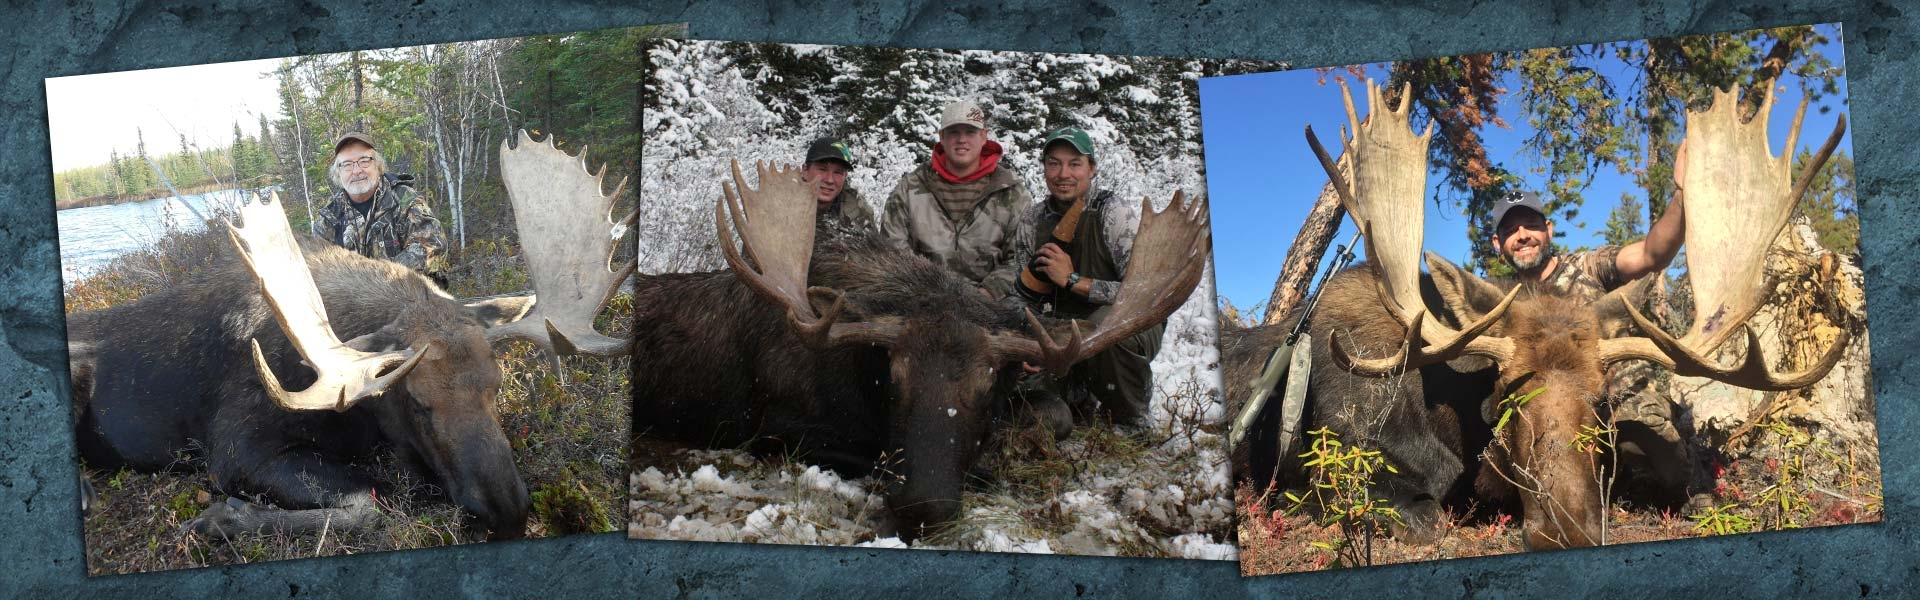 Alberta Trophy Big Game Hunting